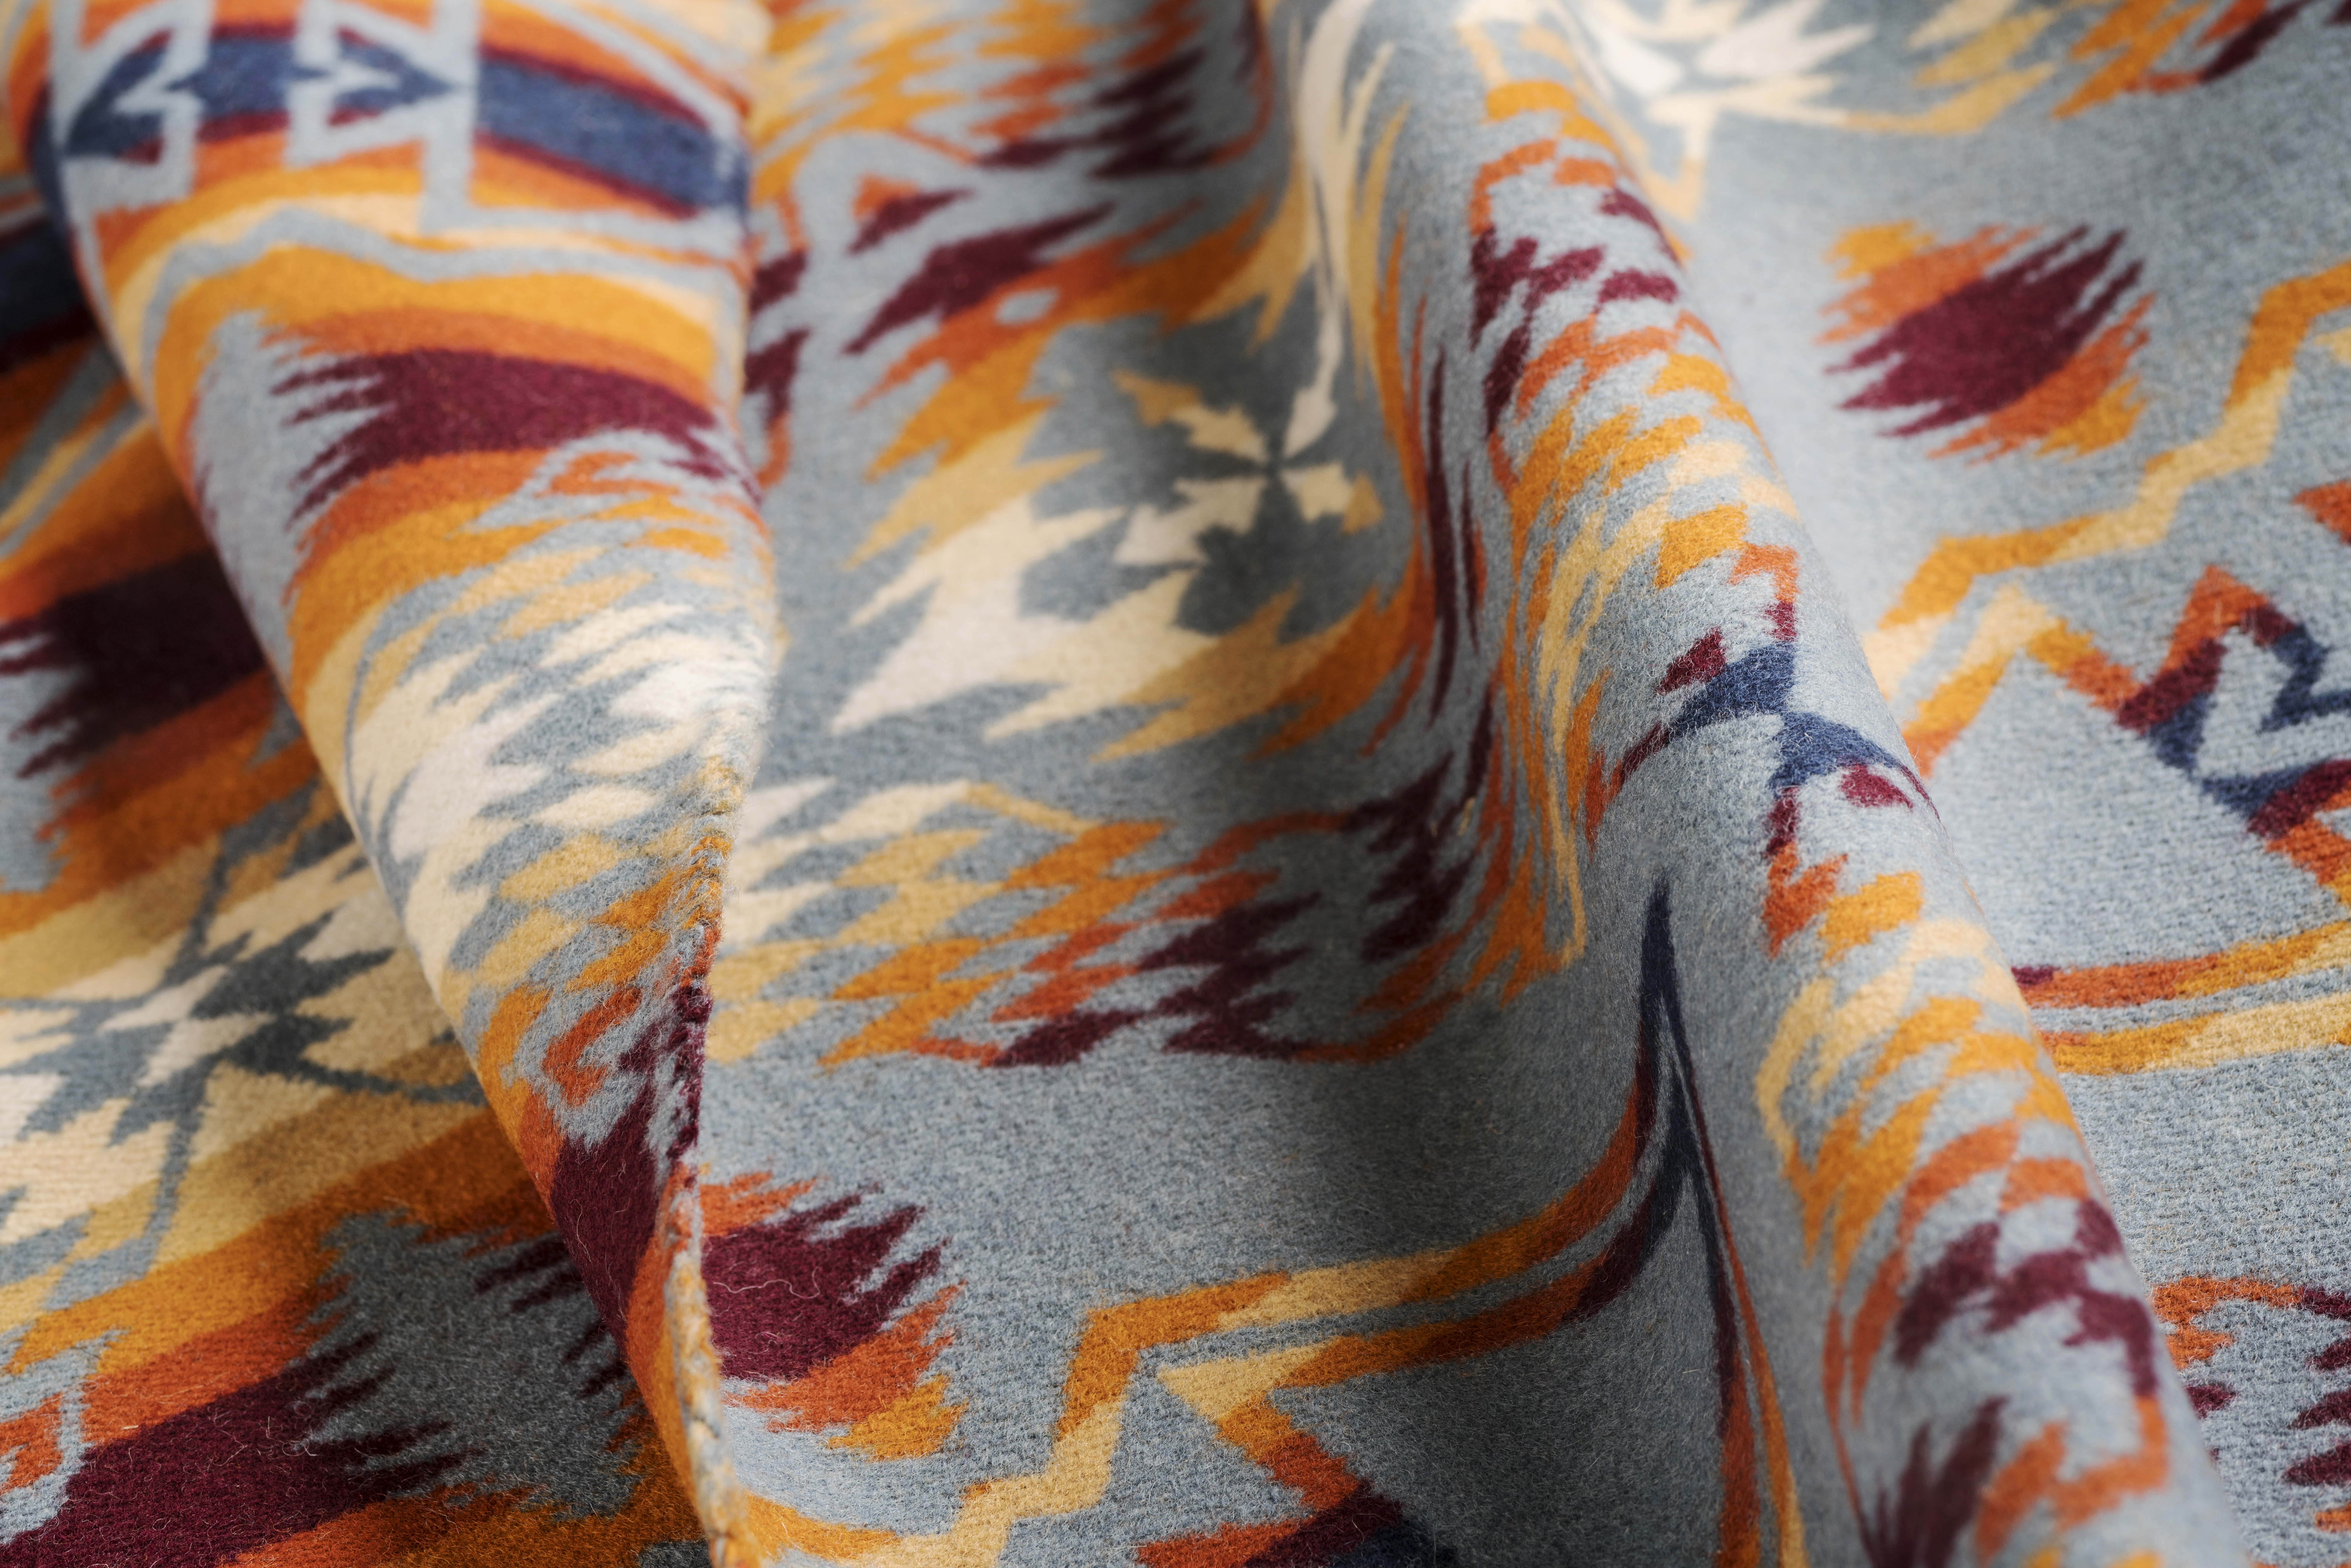 Photo of Pendleton jacquard wool fabric in a pattern of yellow, gold, red and white on a grey background.